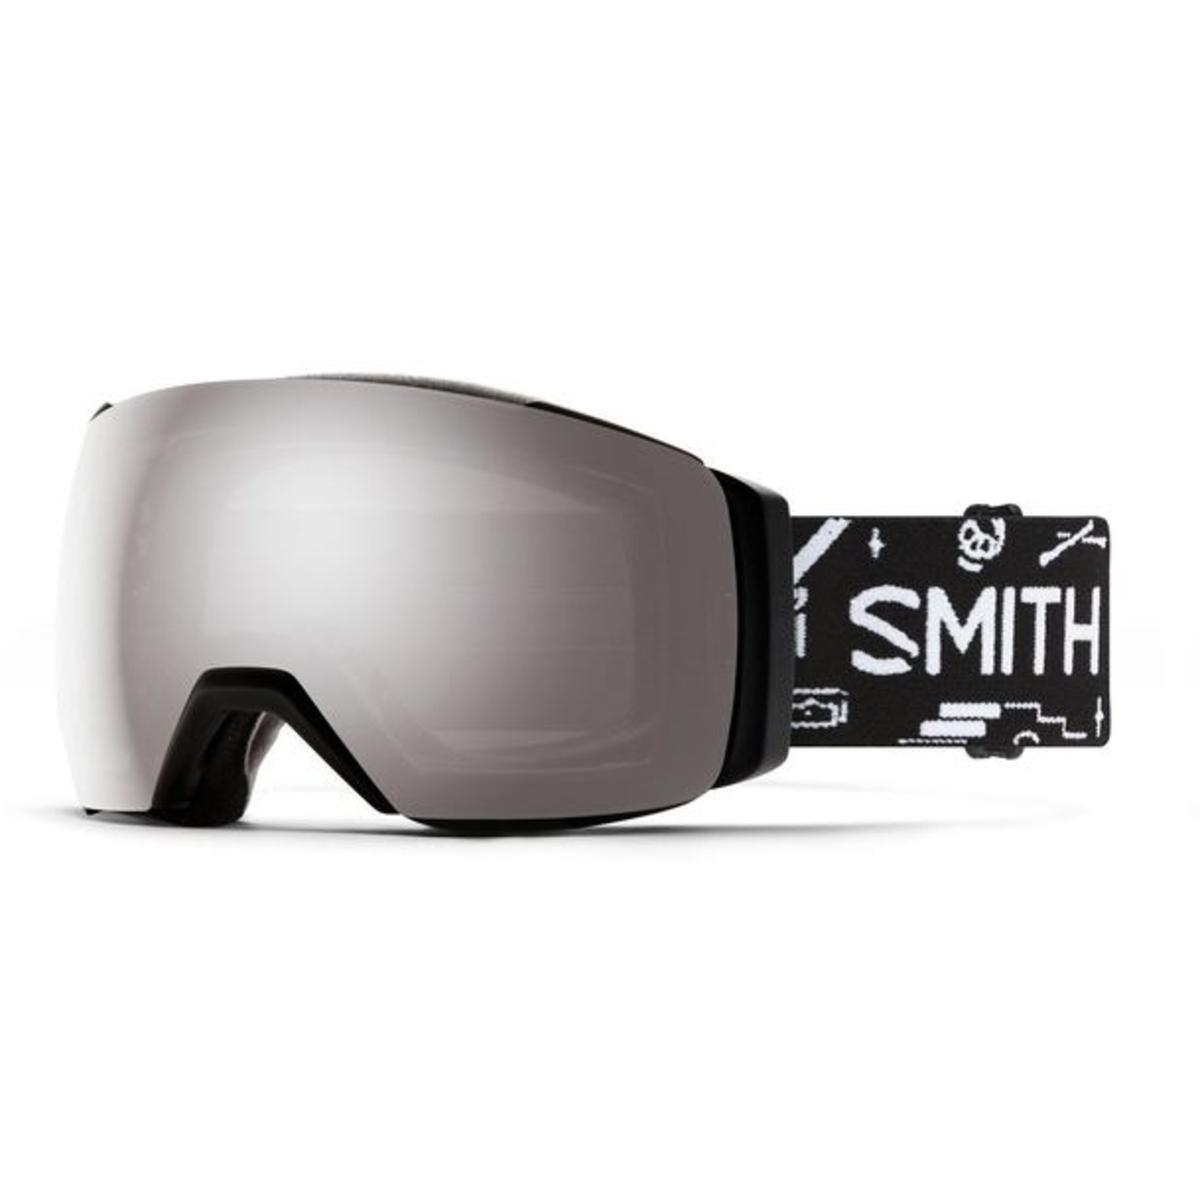 Smith I/O MAG XL Goggles